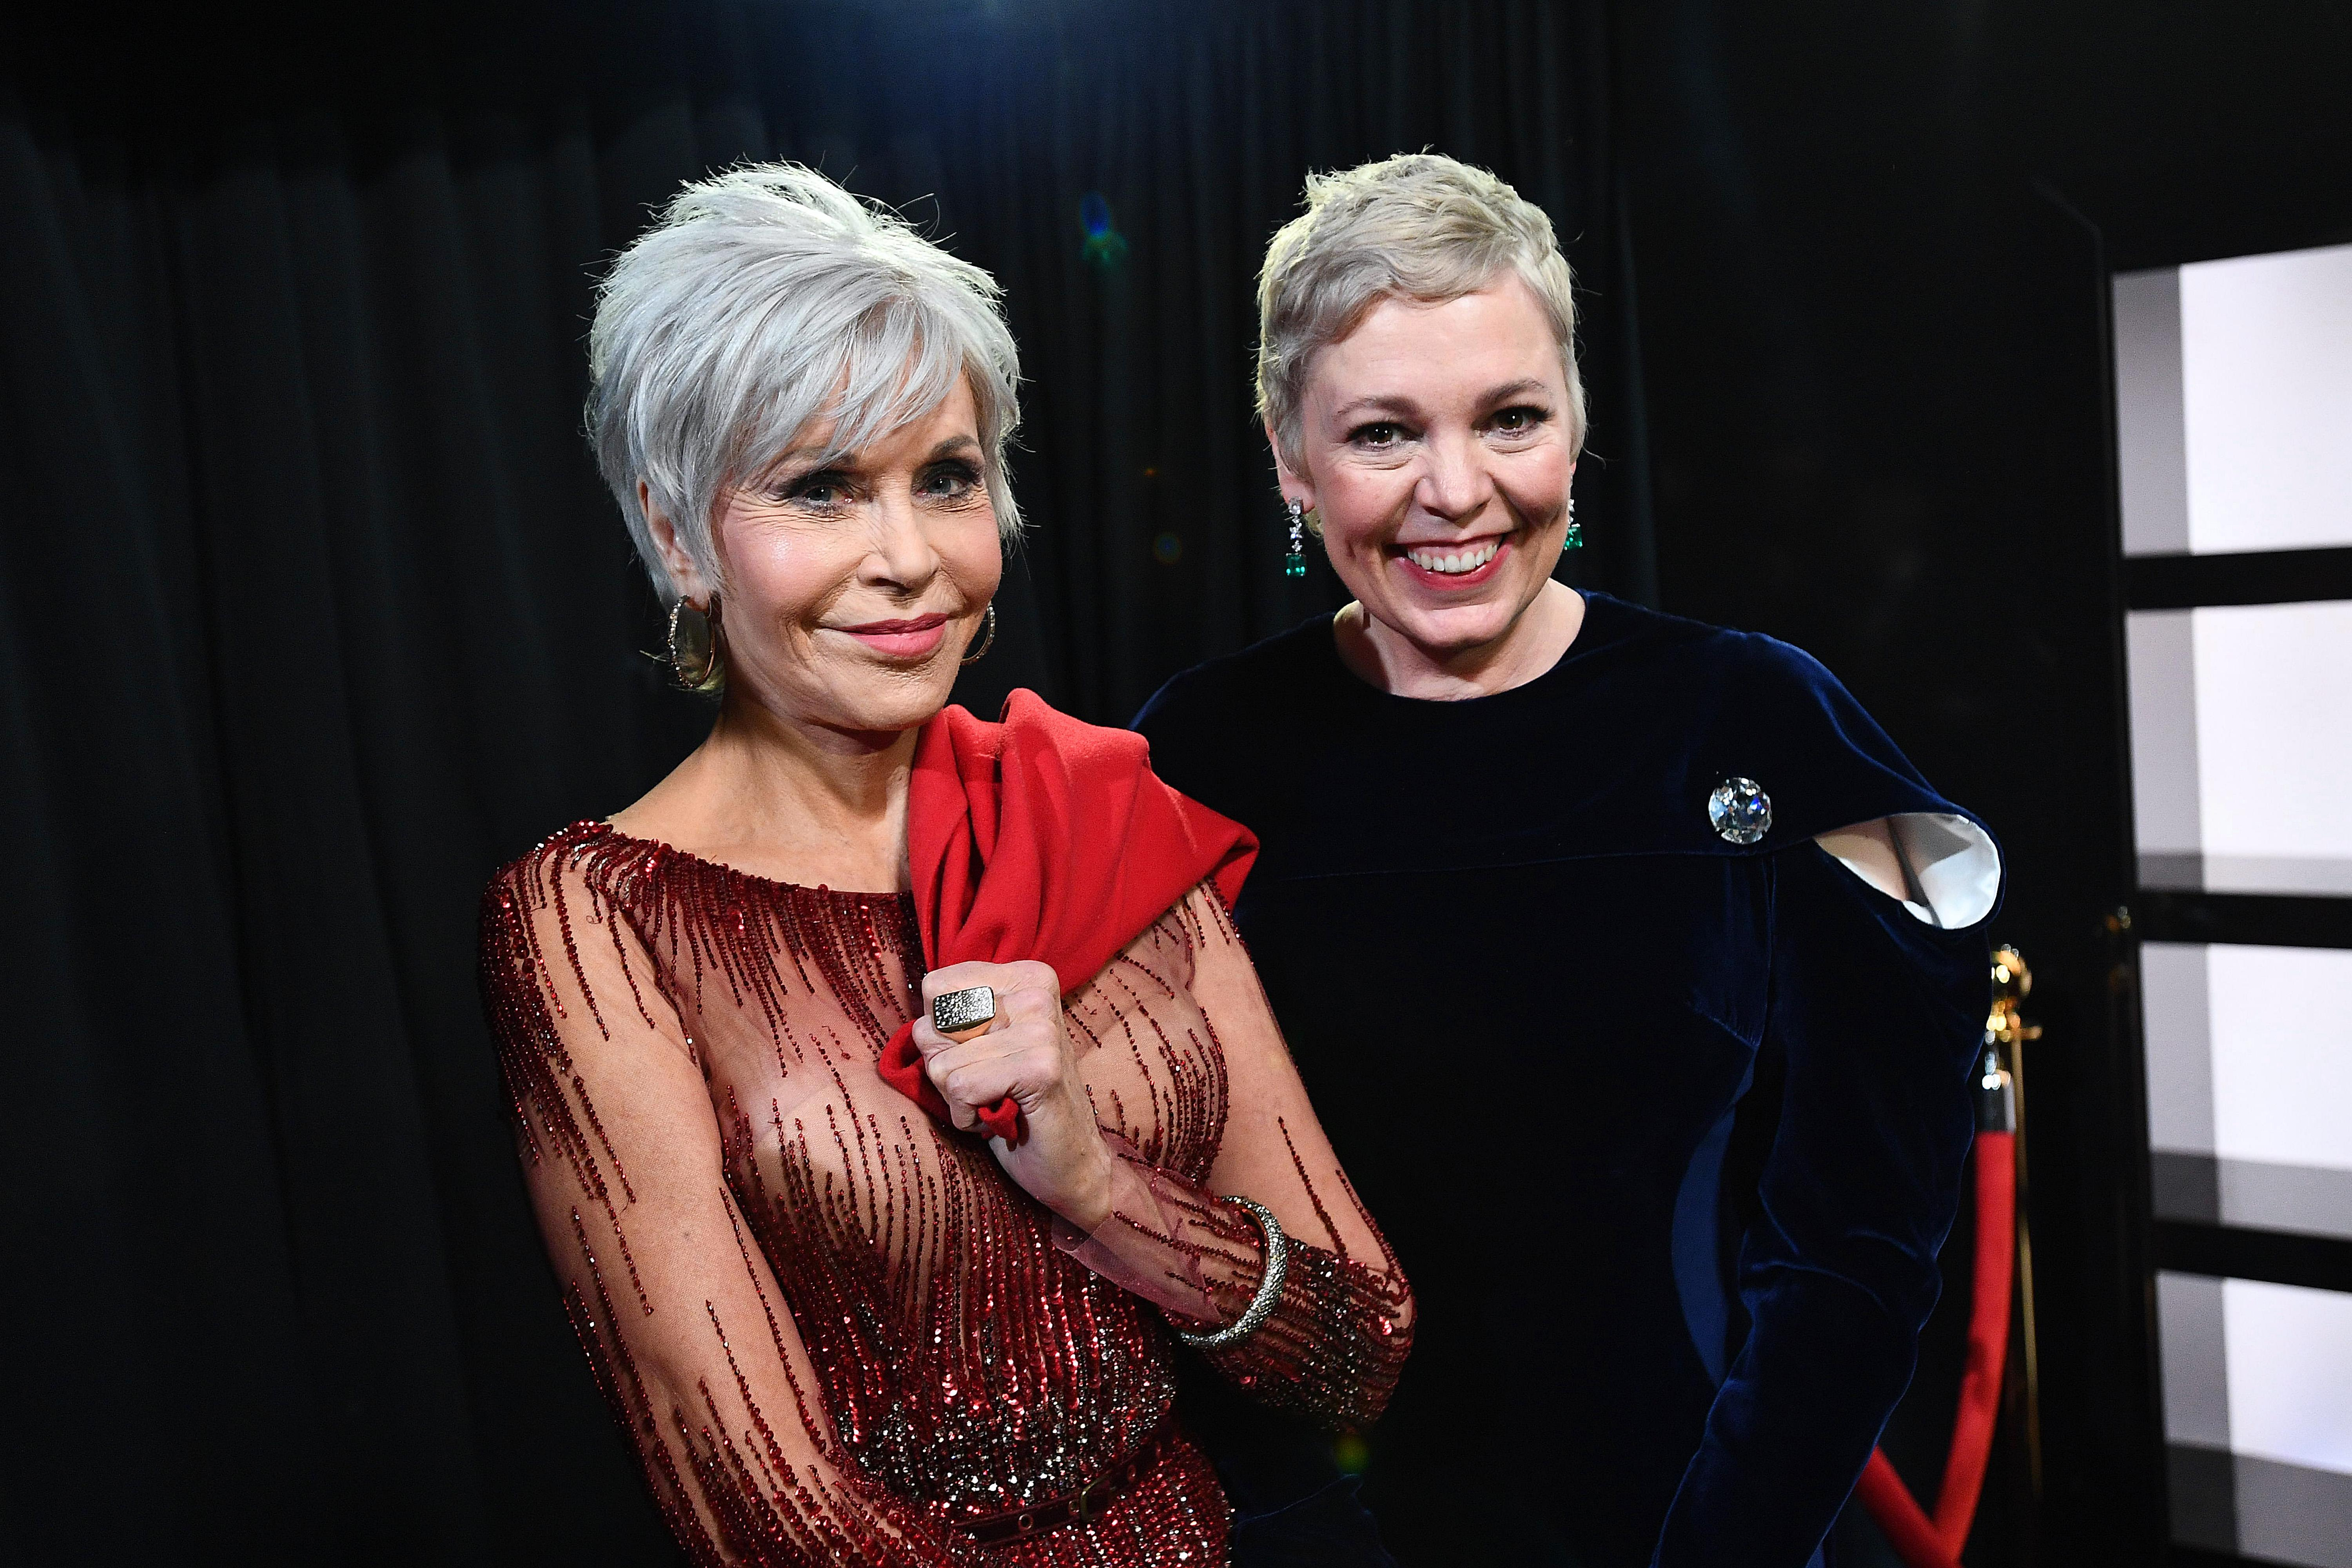 HOLLYWOOD, CALIFORNIA - FEBRUARY 09: In this handout photo provided by A.M.P.A.S. Jane Fonda and Olivia Colman stand backstage during the 92nd Annual Academy Awards at the Dolby Theatre on February 09, 2020 in Hollywood, California. (Photo by Richard Harbaugh - Handout/A.M.P.A.S. via Getty Images)